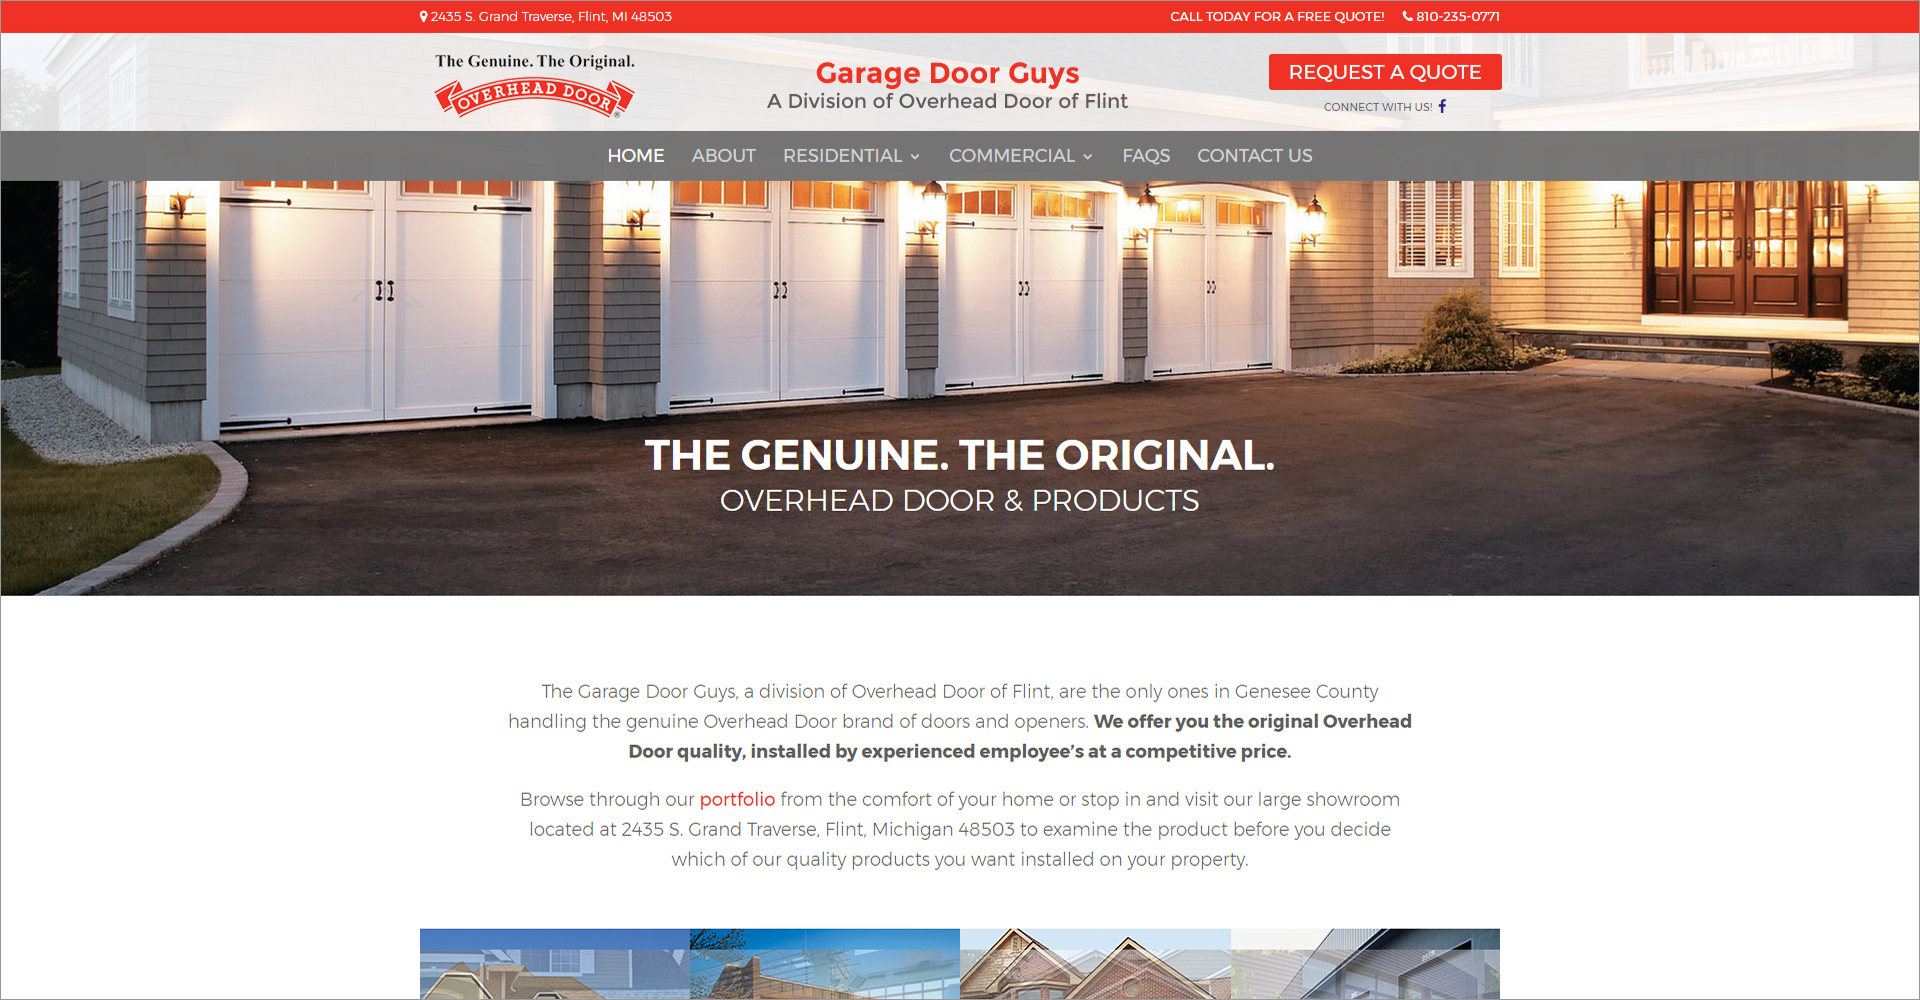 Garage Door Guy of Flint - Zoda Design